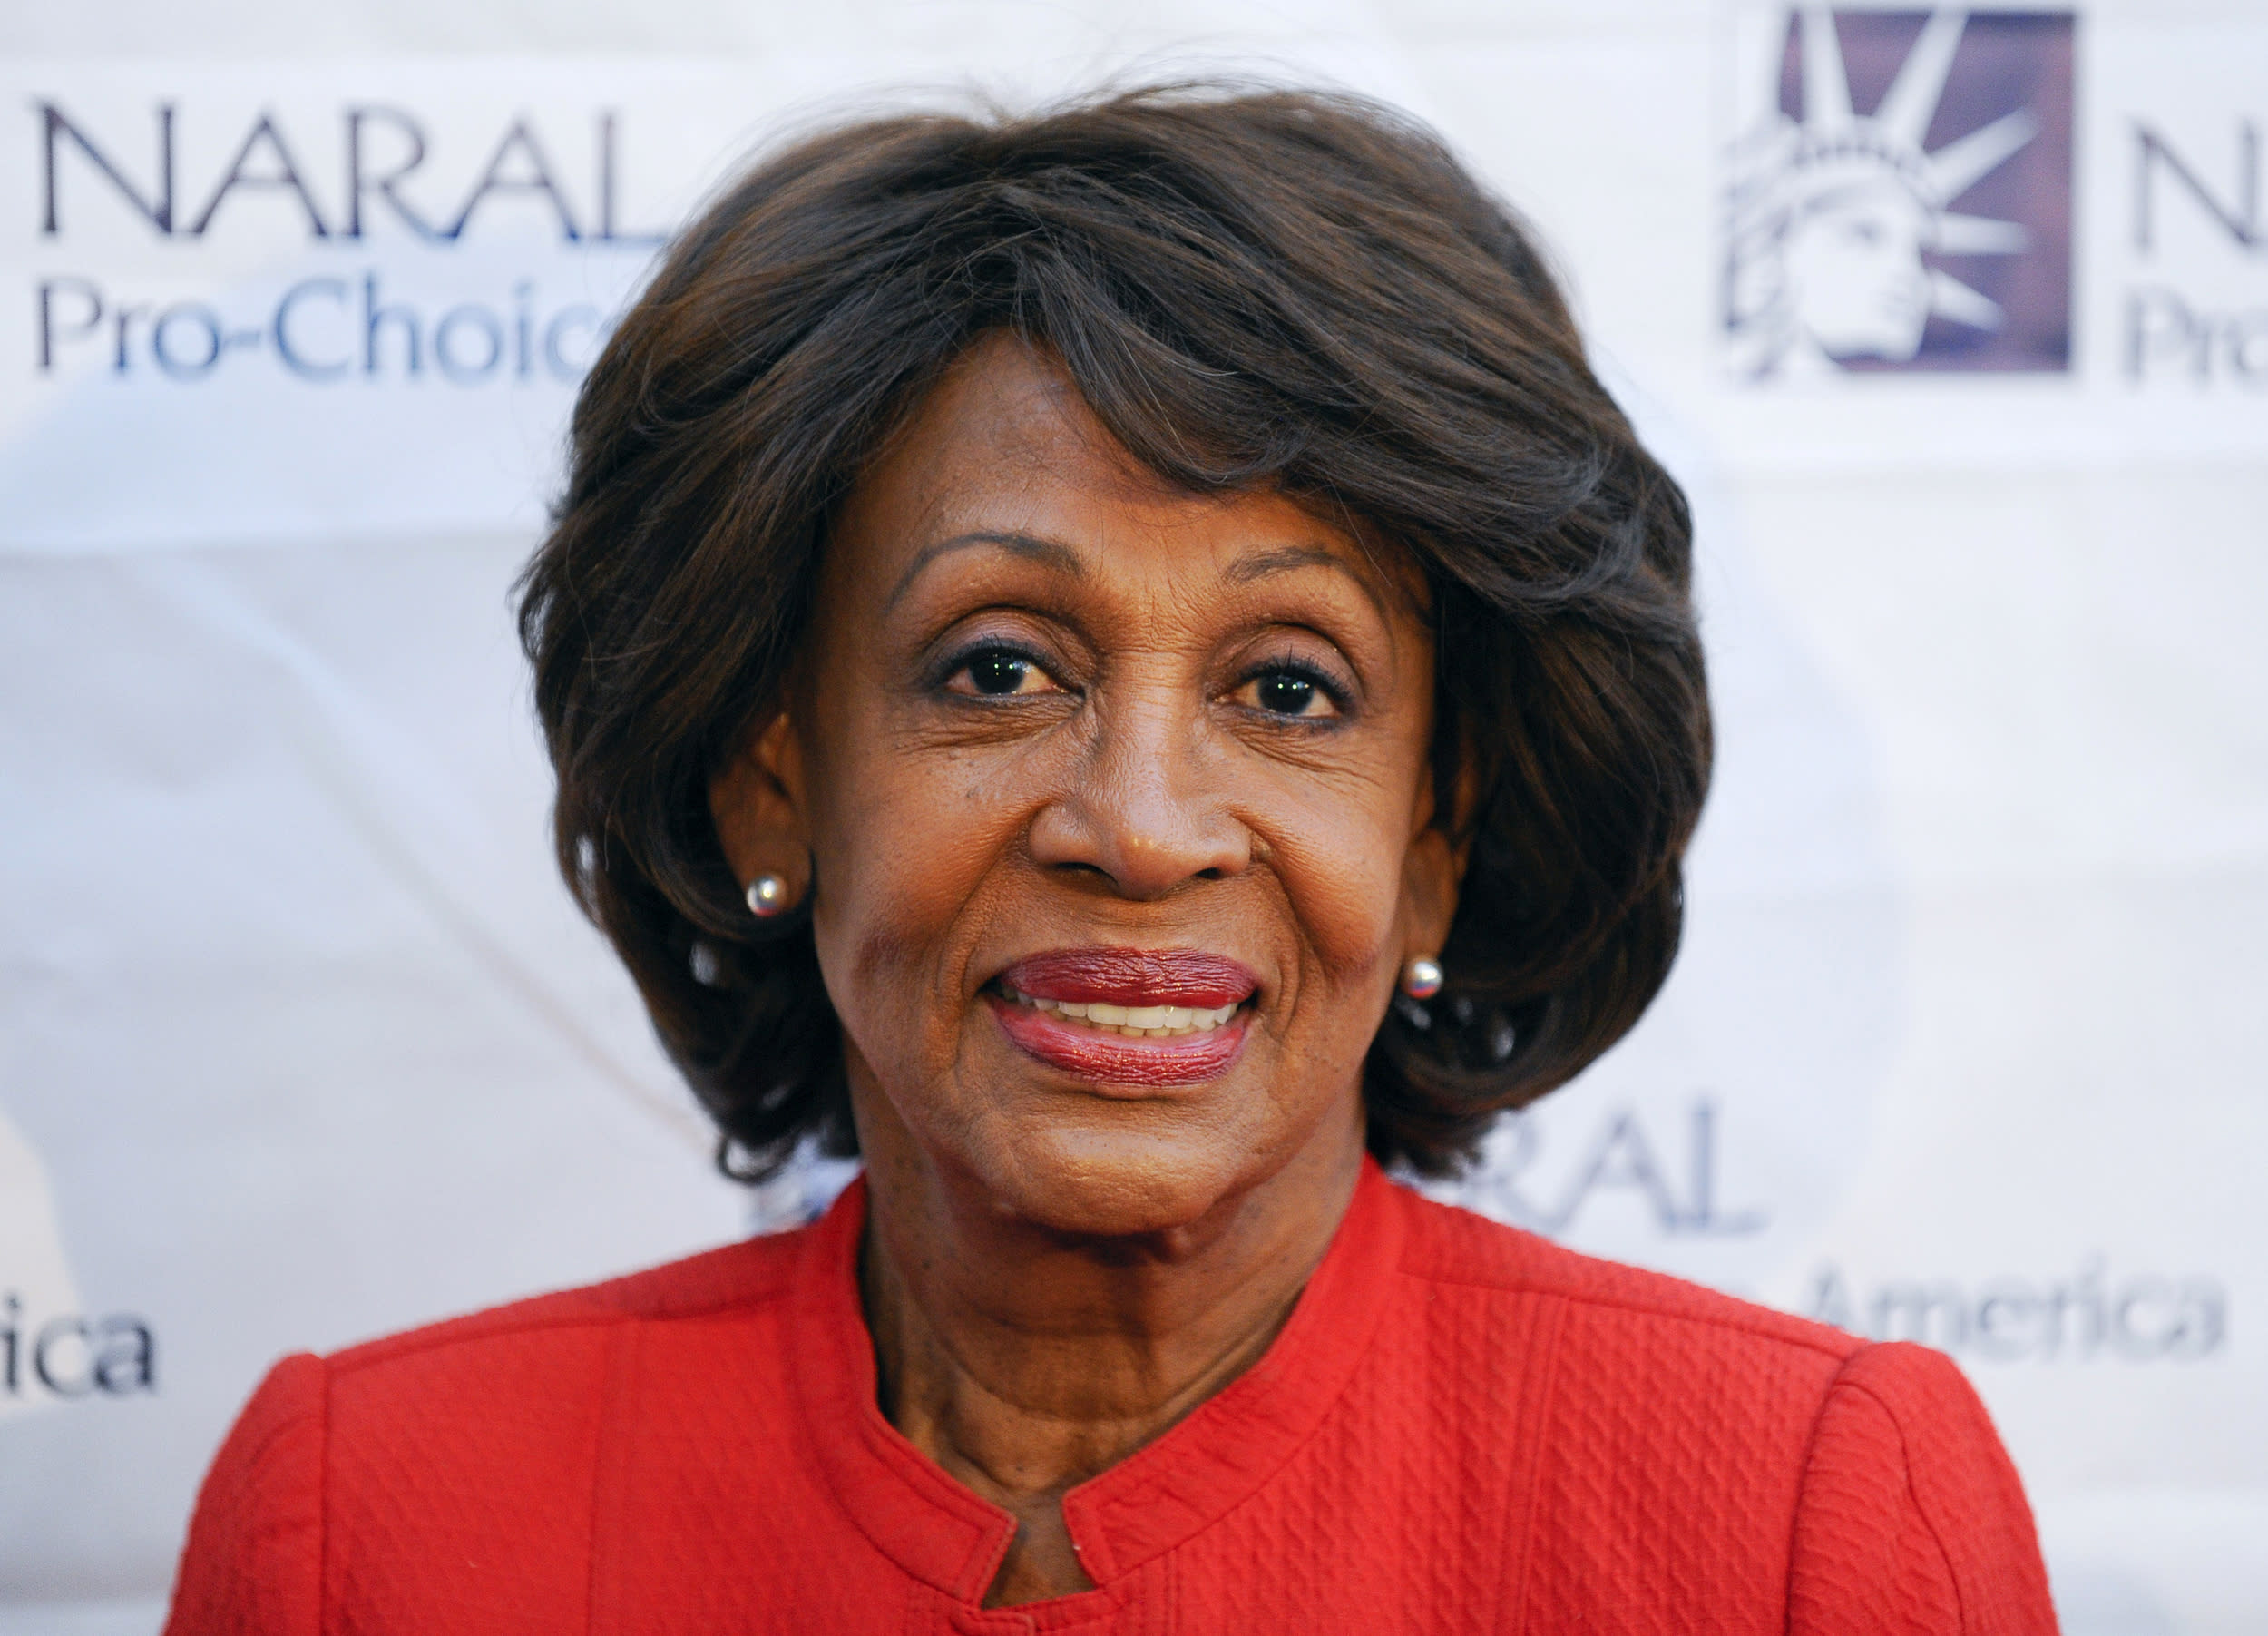 Congresswoman Maxine Waters arrives at the National Abortion and Reproductive Rights Action League Pro-Choice America's 2012 Los Angeles Power of Choice Reception in West Hollywood, California May 24, 2012. REUTERS/Gus Ruelas (UNITED STATES - Tags: ENTERTAINMENT POLITICS SOCIETY)